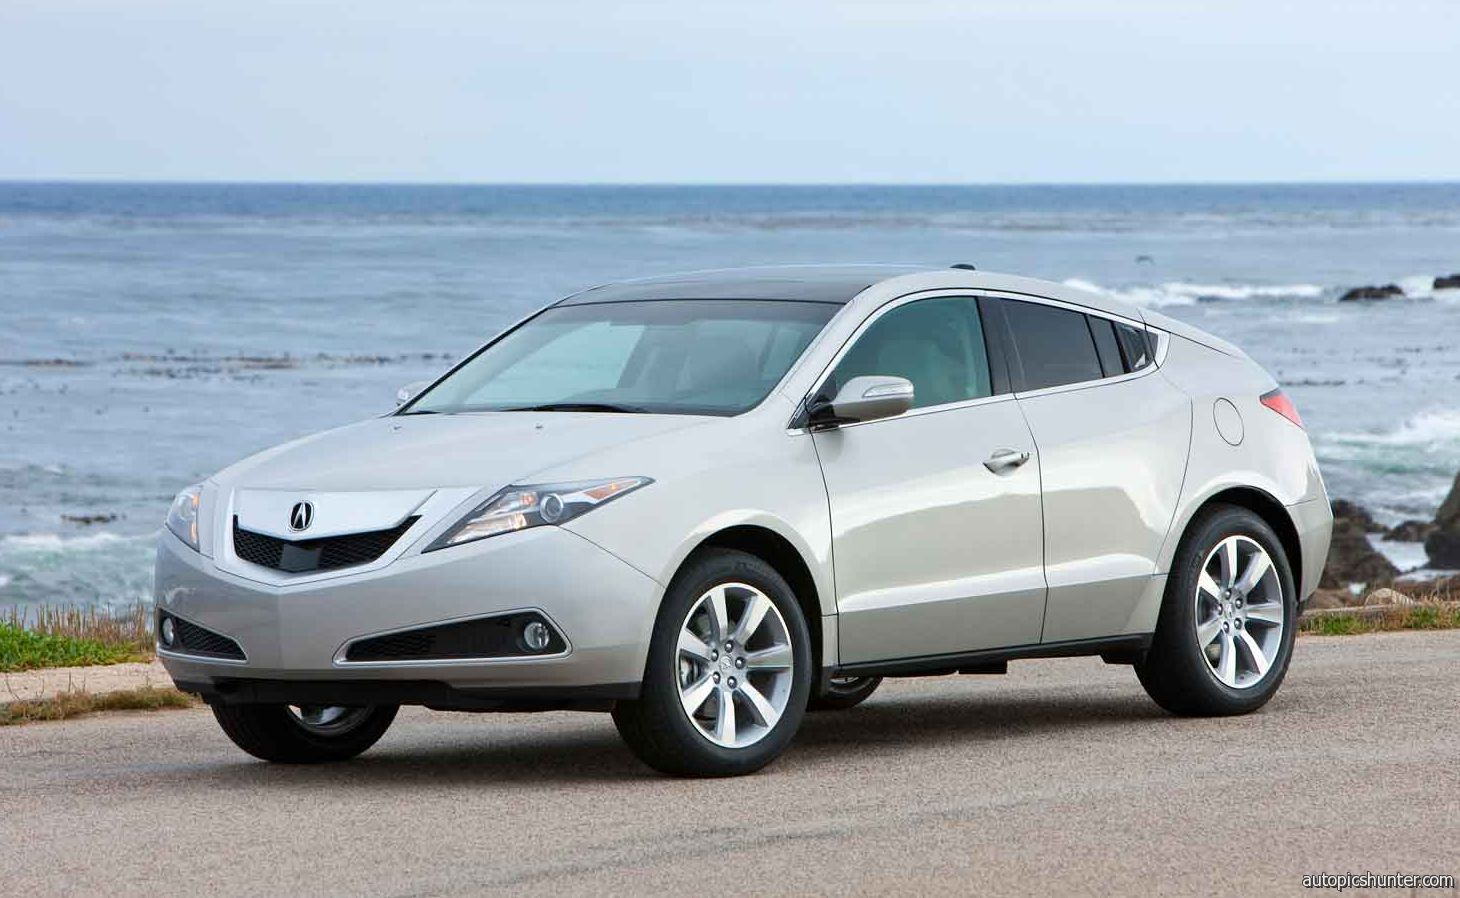 2012 acura zdx review specs price performance neocarsuv com. Black Bedroom Furniture Sets. Home Design Ideas